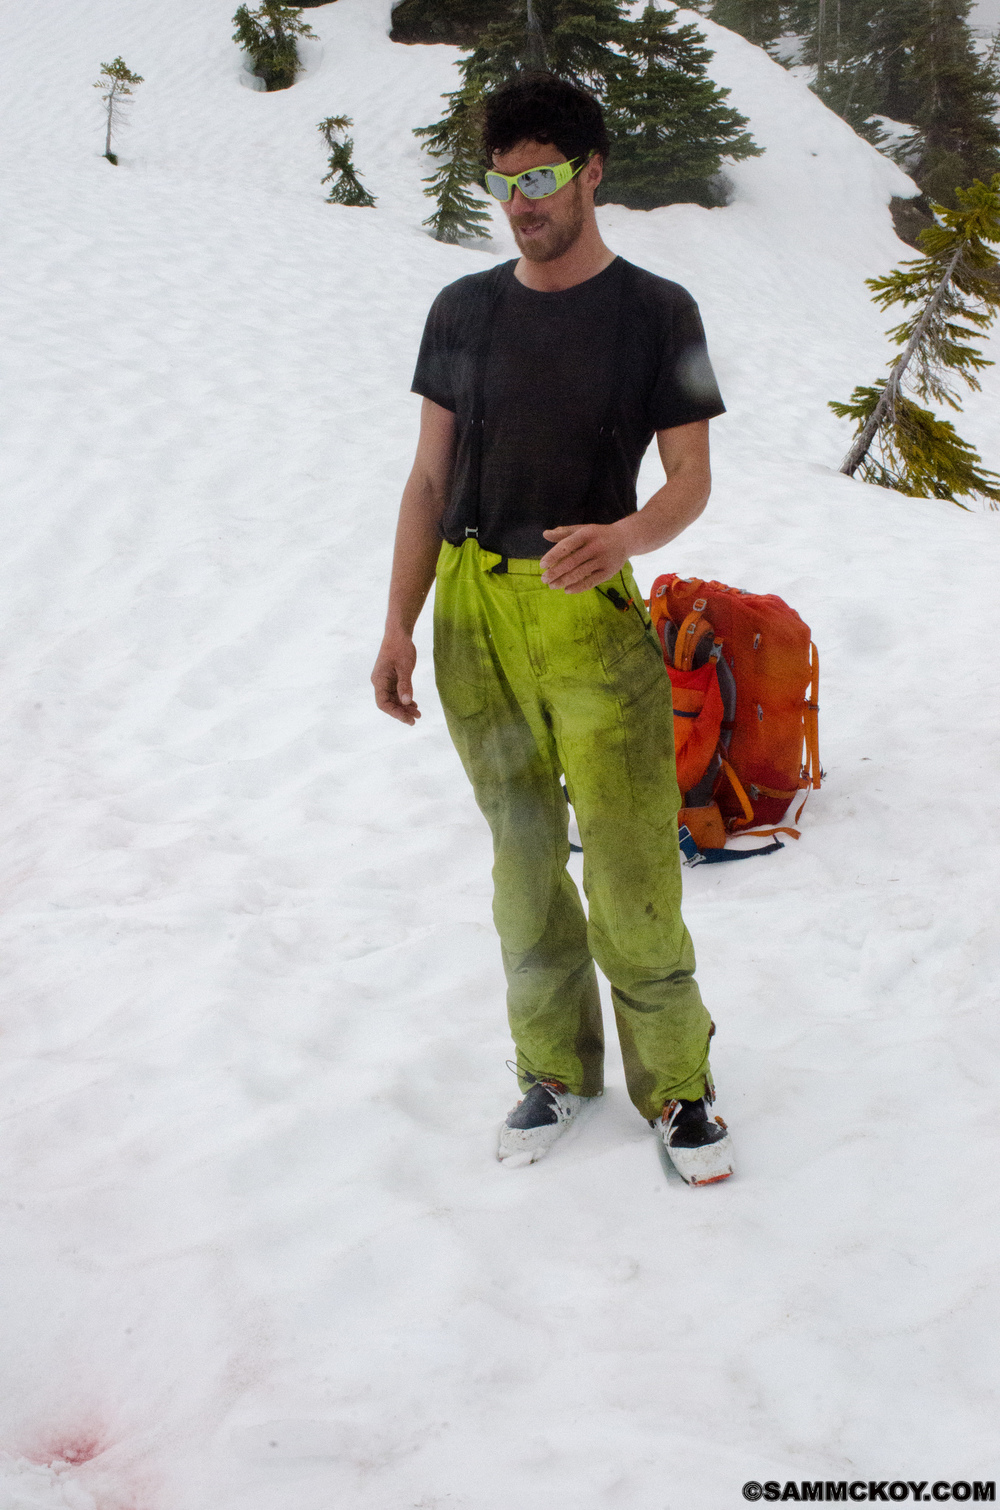 When we finally regain snow after crawling out of the valley, Steve's pants and expression say it all.